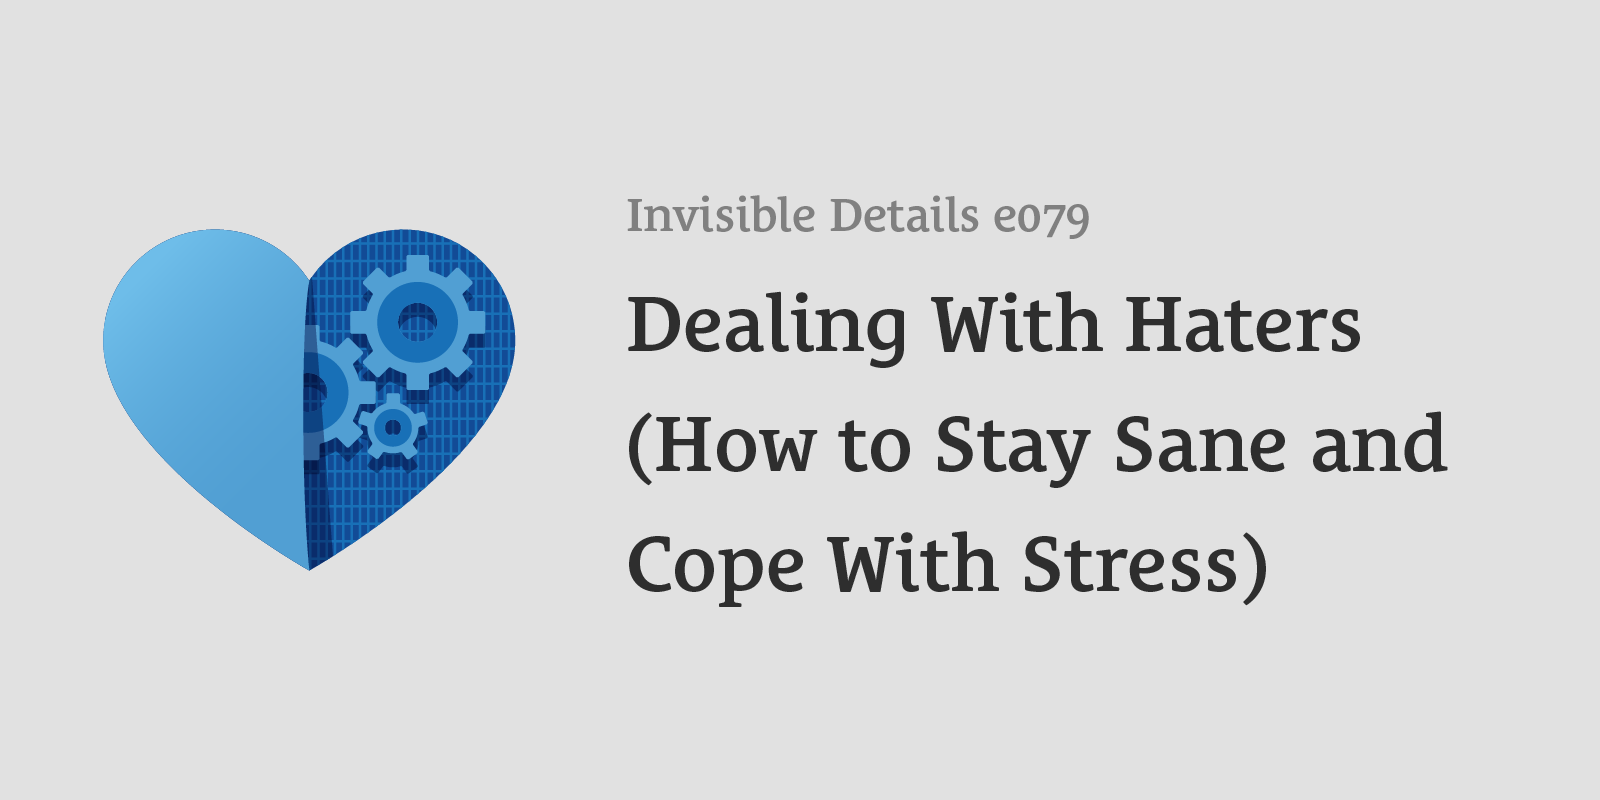 Dealing With Haters (How to Stay Sane and Cope With Stress)